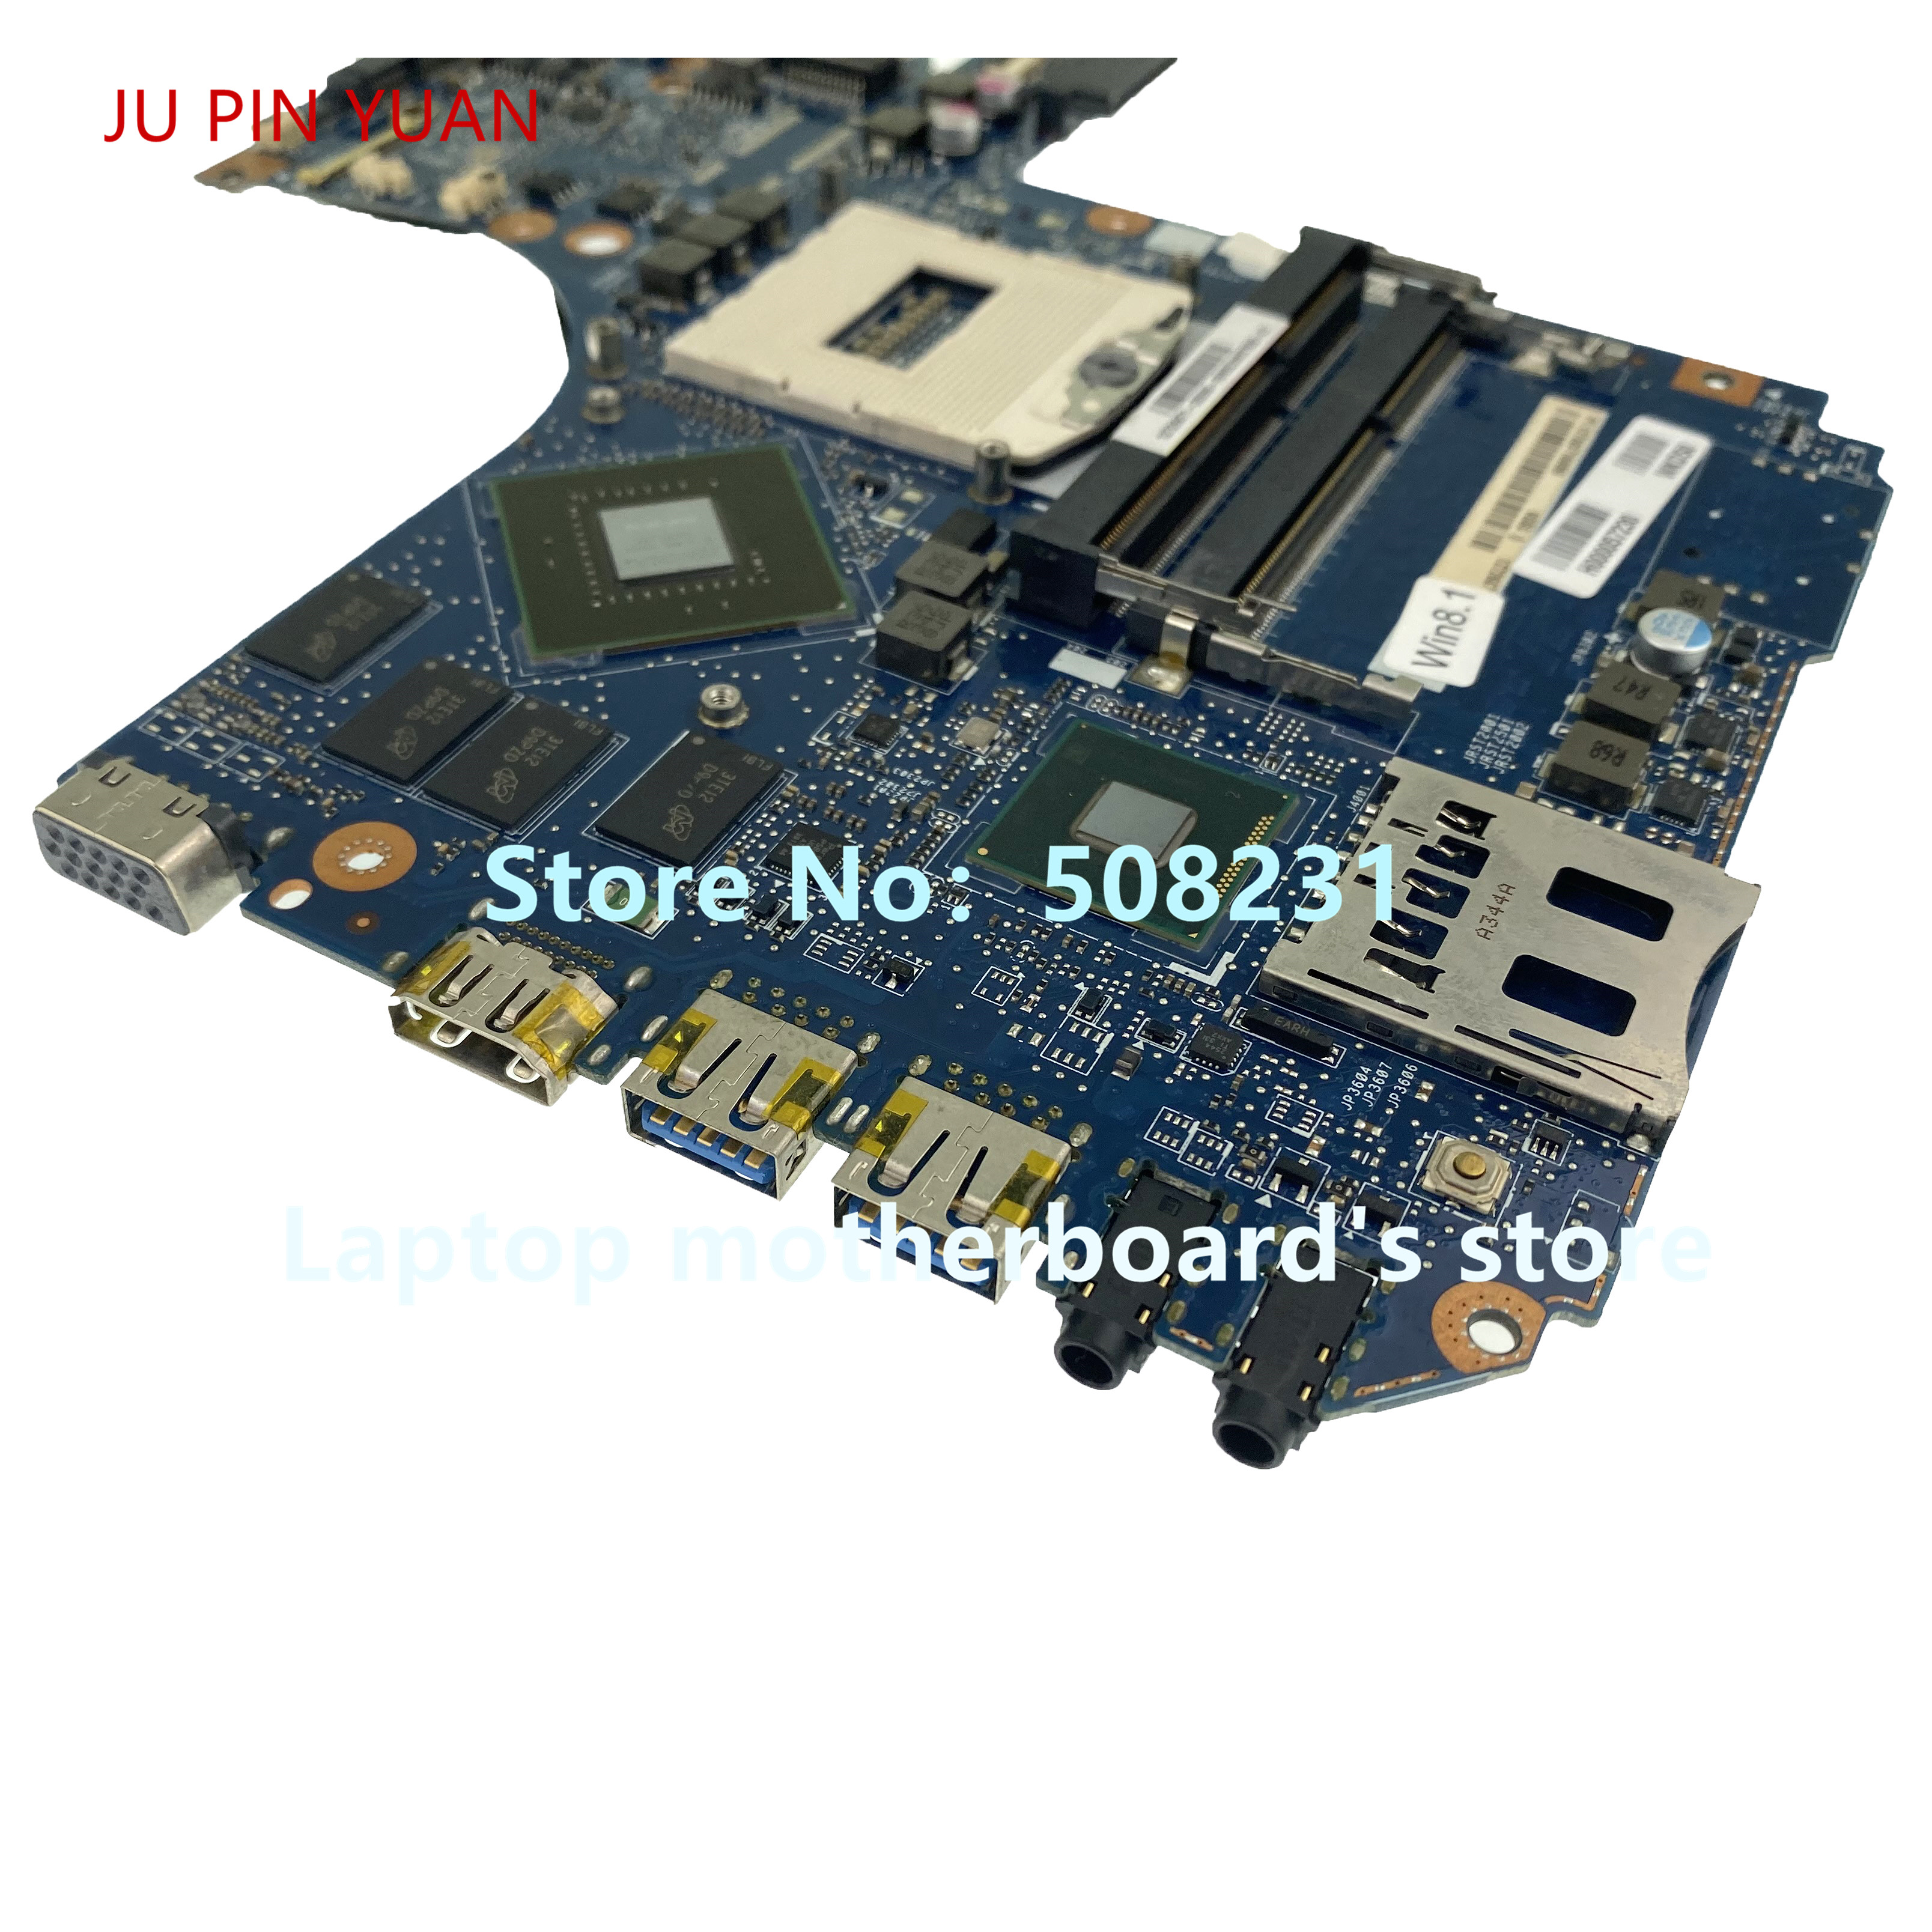 JU PIN YUAN For Toshiba Satellite P50T-<font><b>A</b></font> P55T-<font><b>A</b></font> P50 <font><b>P55</b></font> Laptop Motherboard H000057230 mainboard GT745M 100% fully tested image